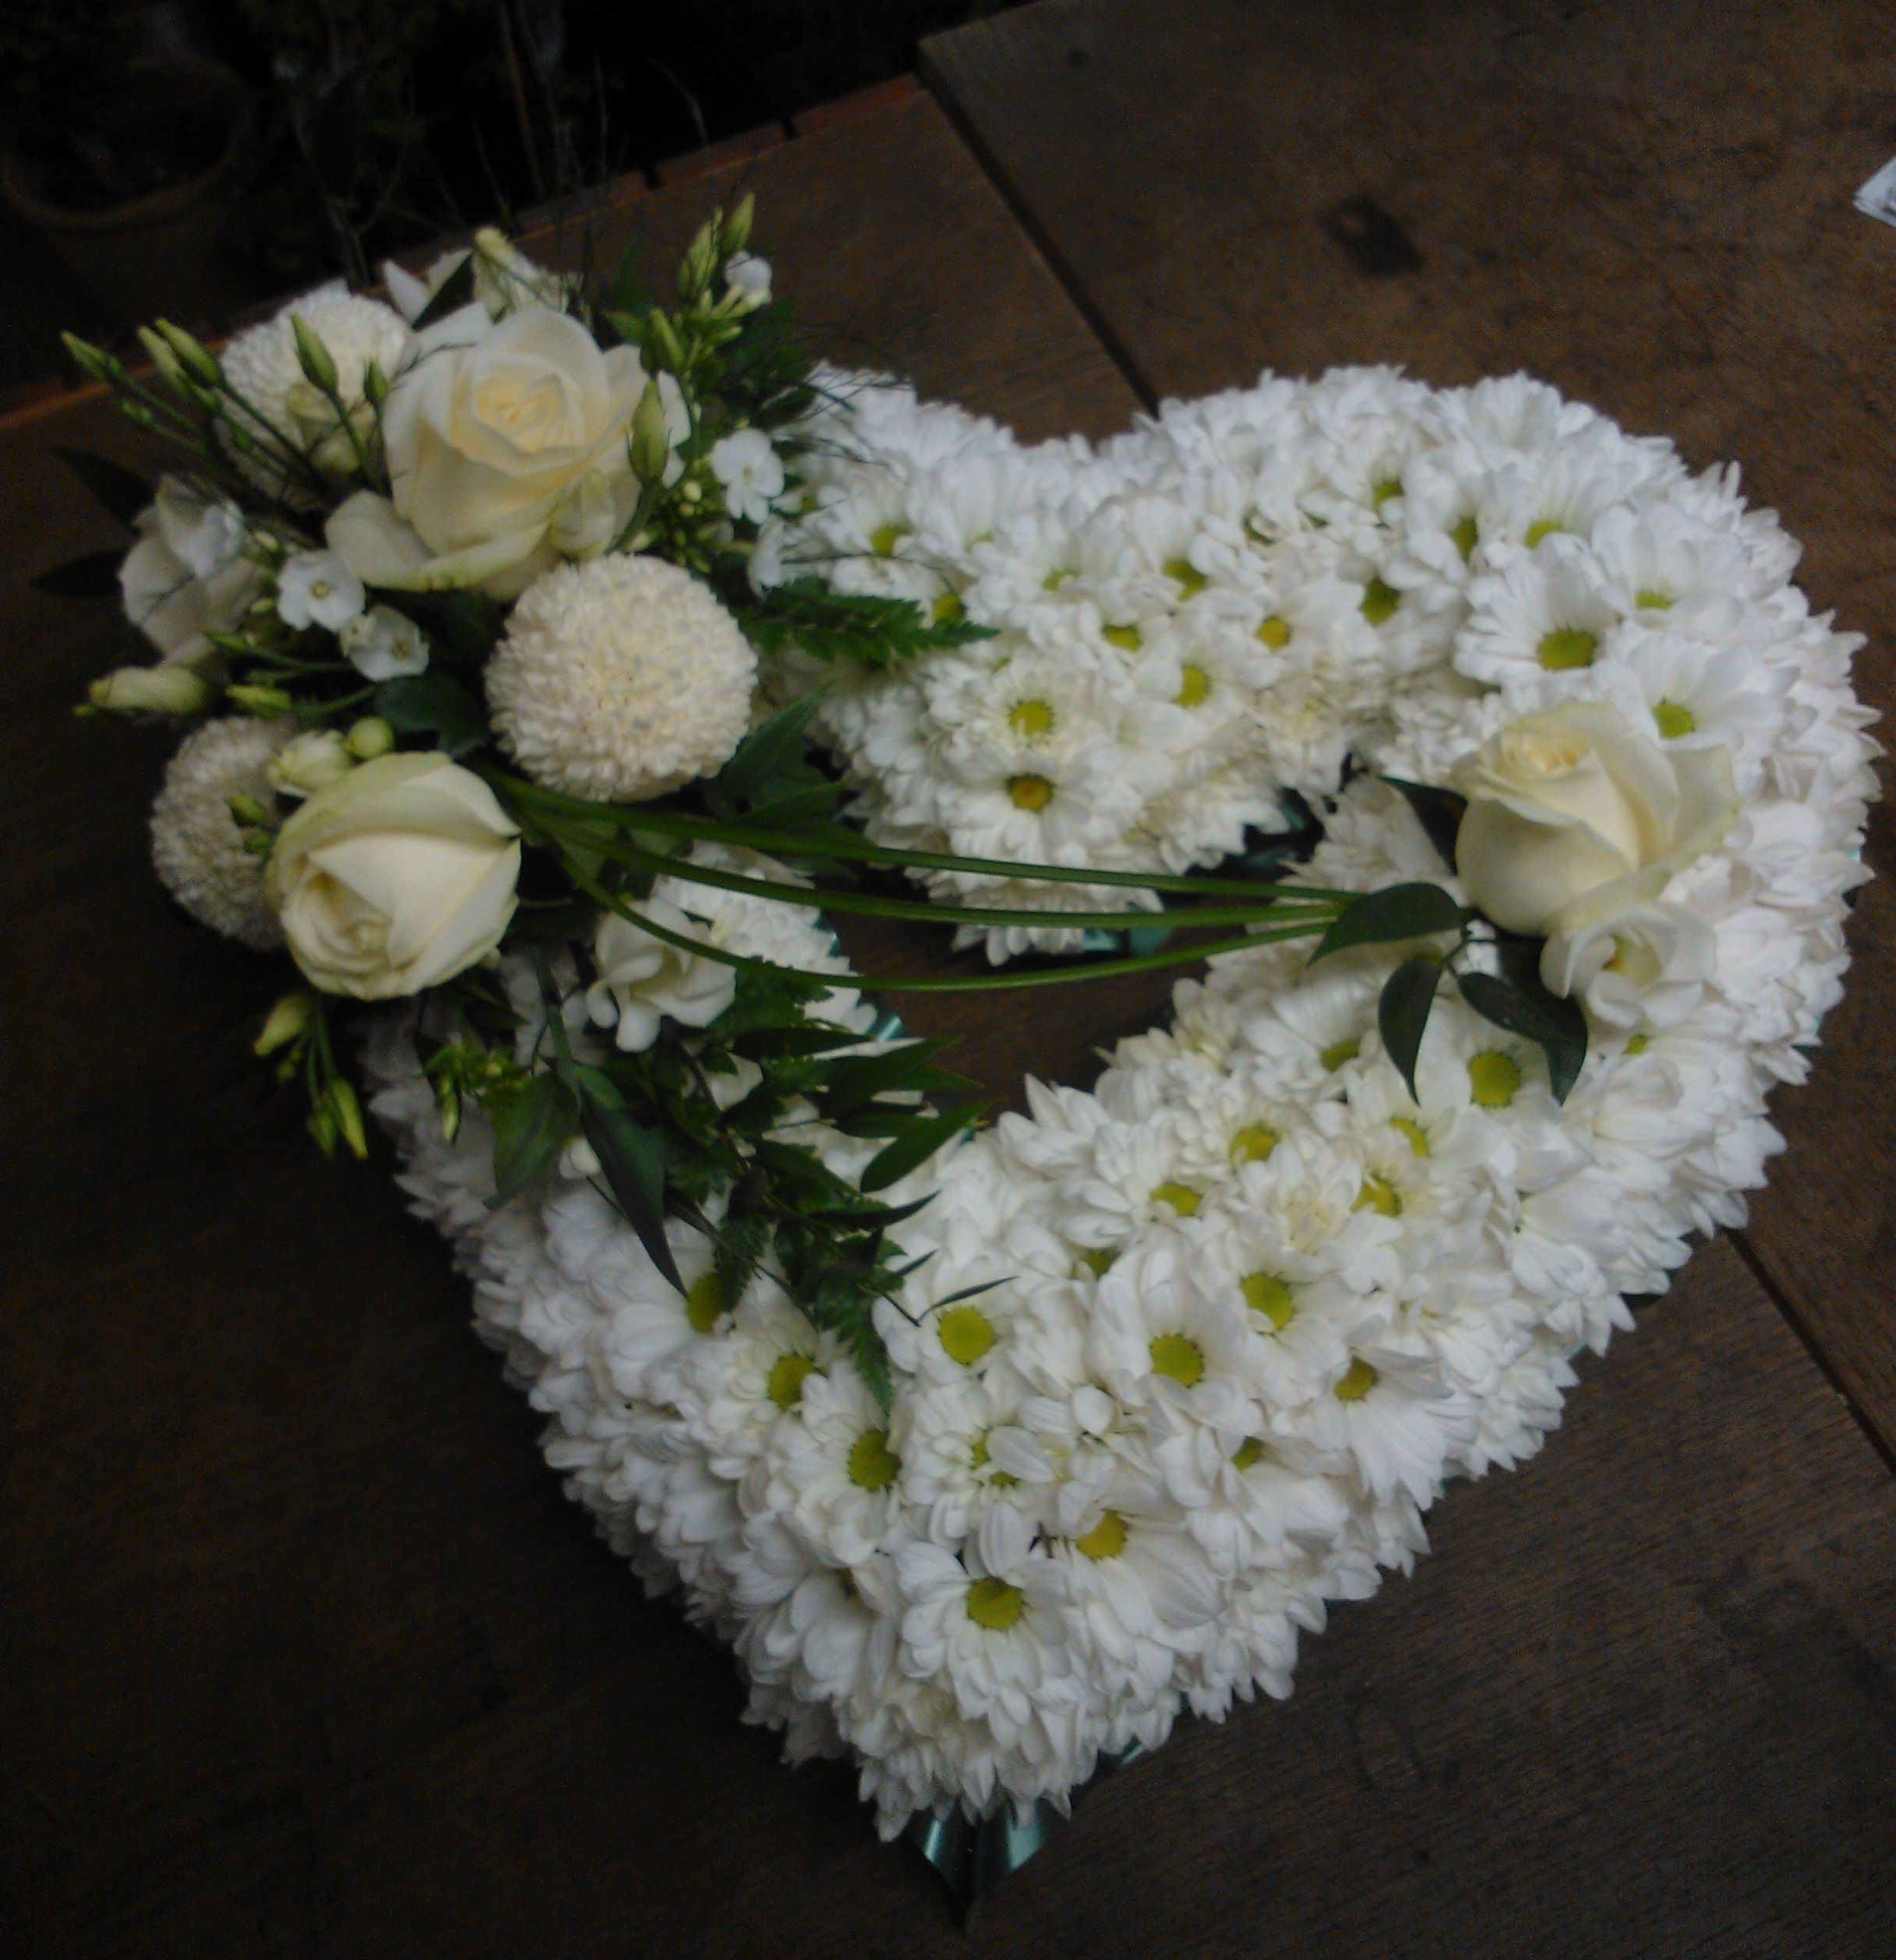 Funeral flowers floralcraft flowers heart funeral tribute flowers yorkshire izmirmasajfo